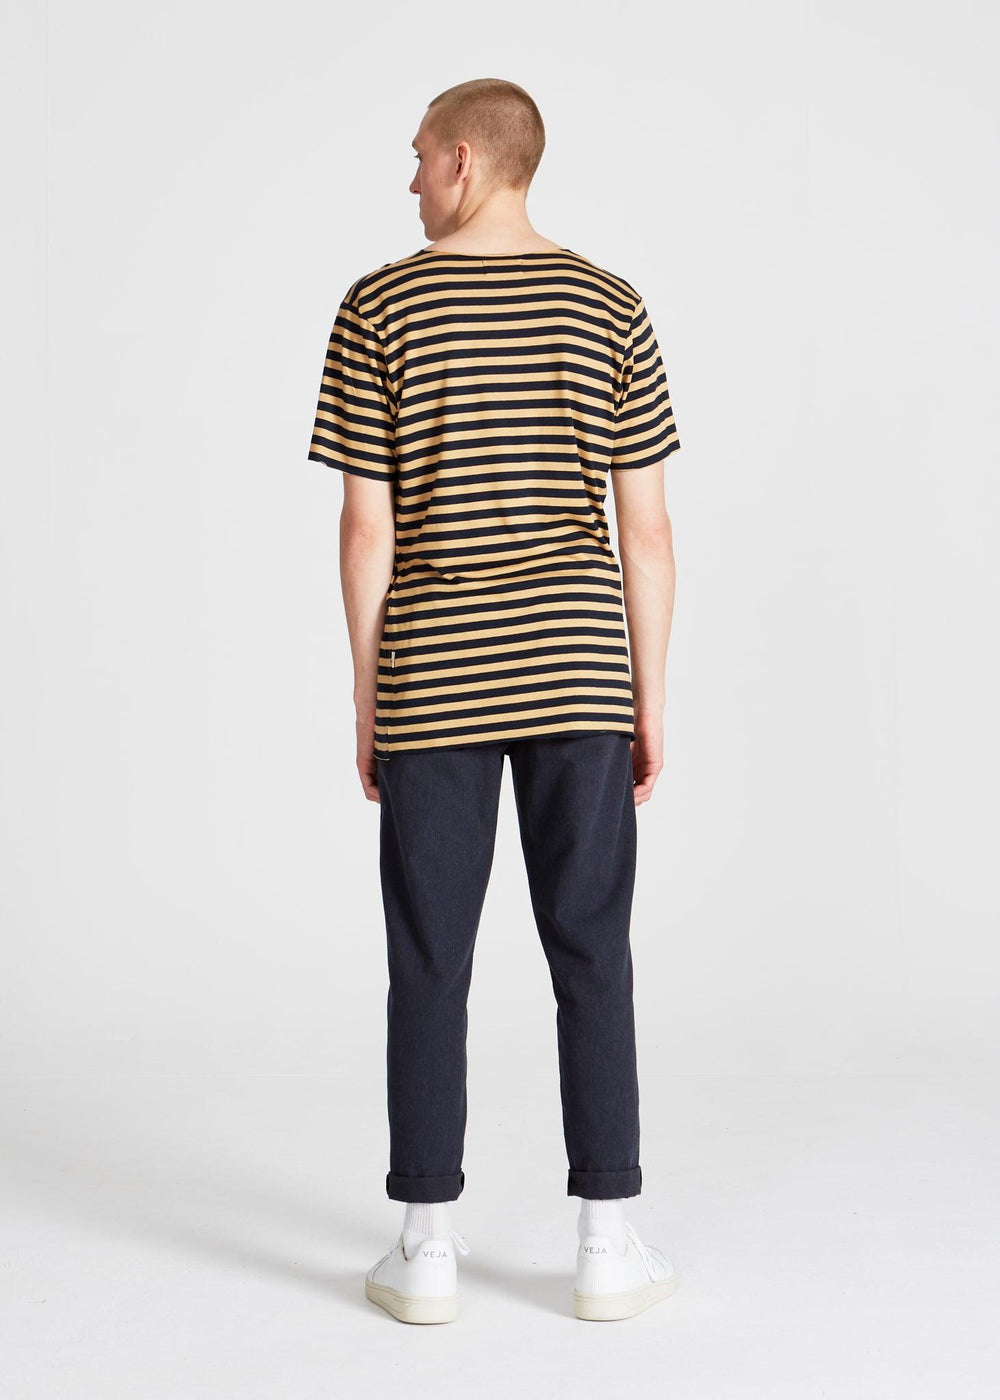 Givn BERLIN New Foundland T-Shirt Blue / Camel (Stripes)